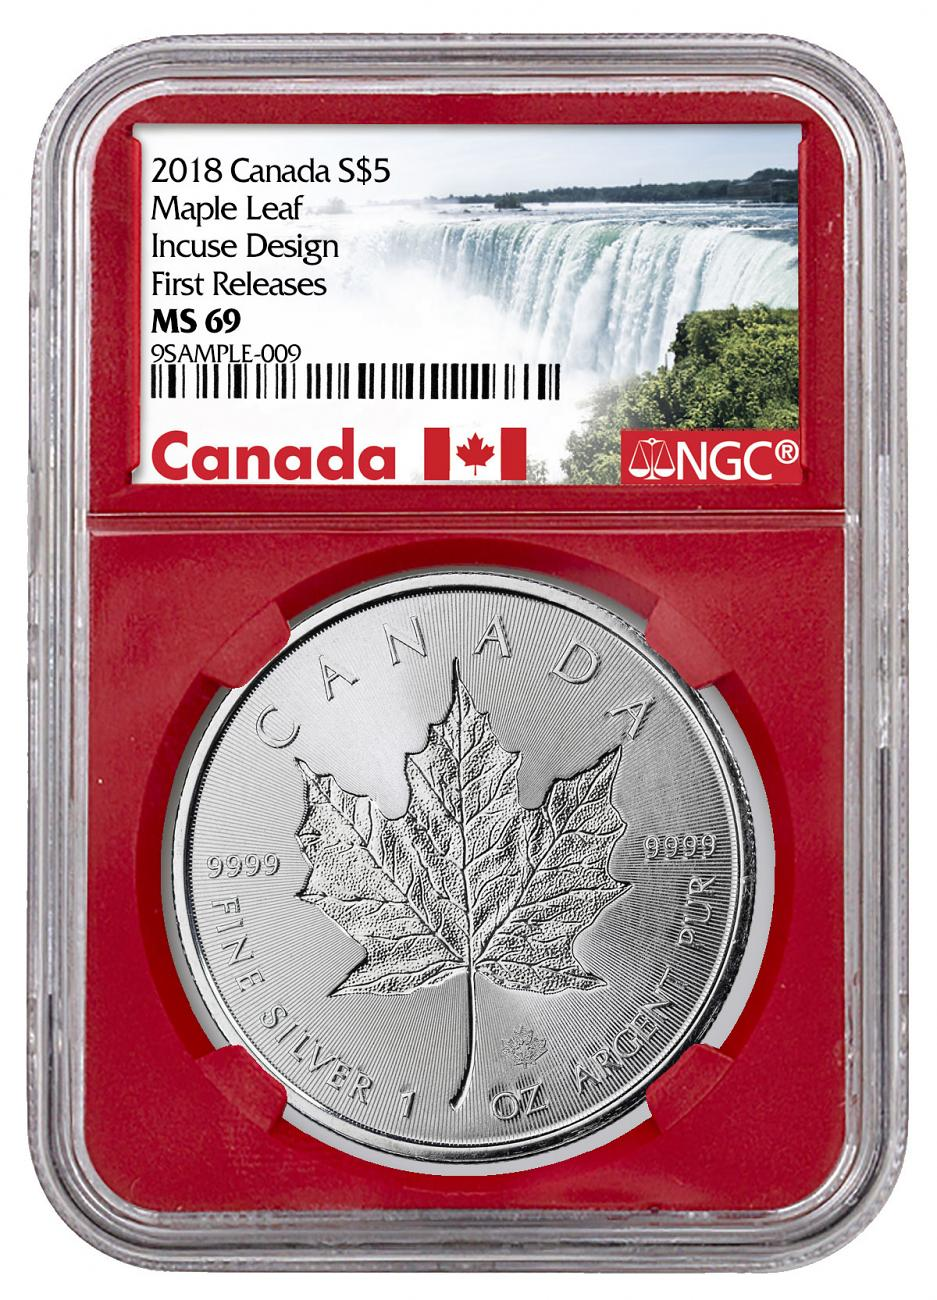 2018 Canada 1 oz Silver Maple Leaf - Incuse $5 Coin NGC MS69 FR Red Core Holder Exclusive Canada Label